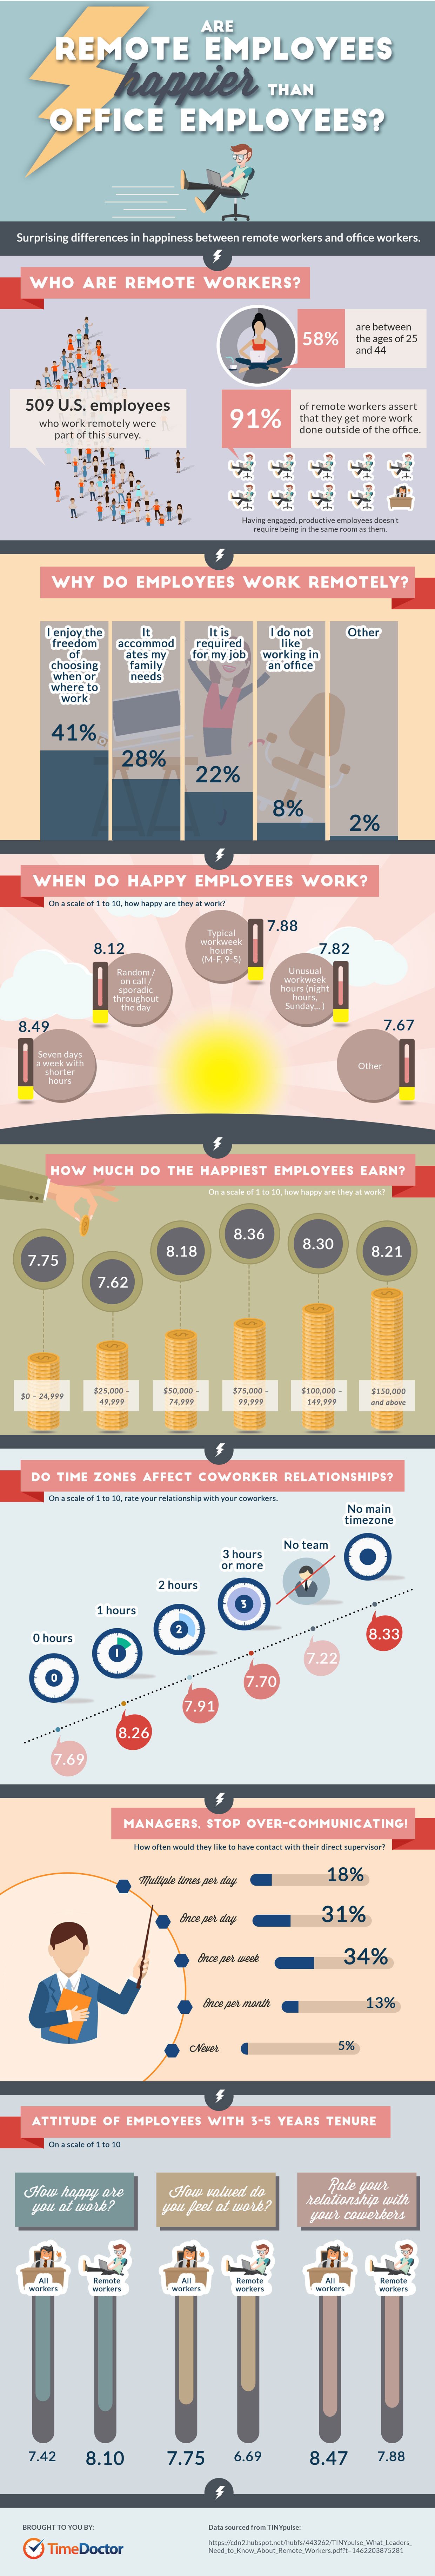 Remote Workers are Happier Than Office Employees 1